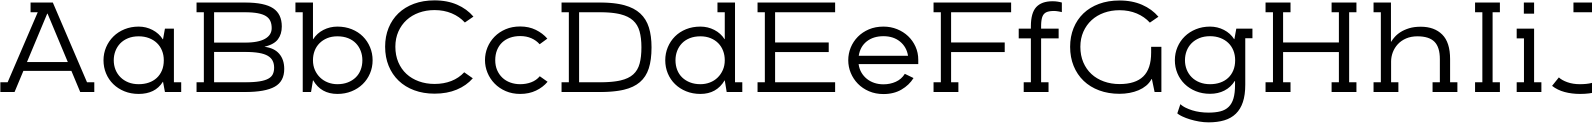 Arkibal Serif Medium Font